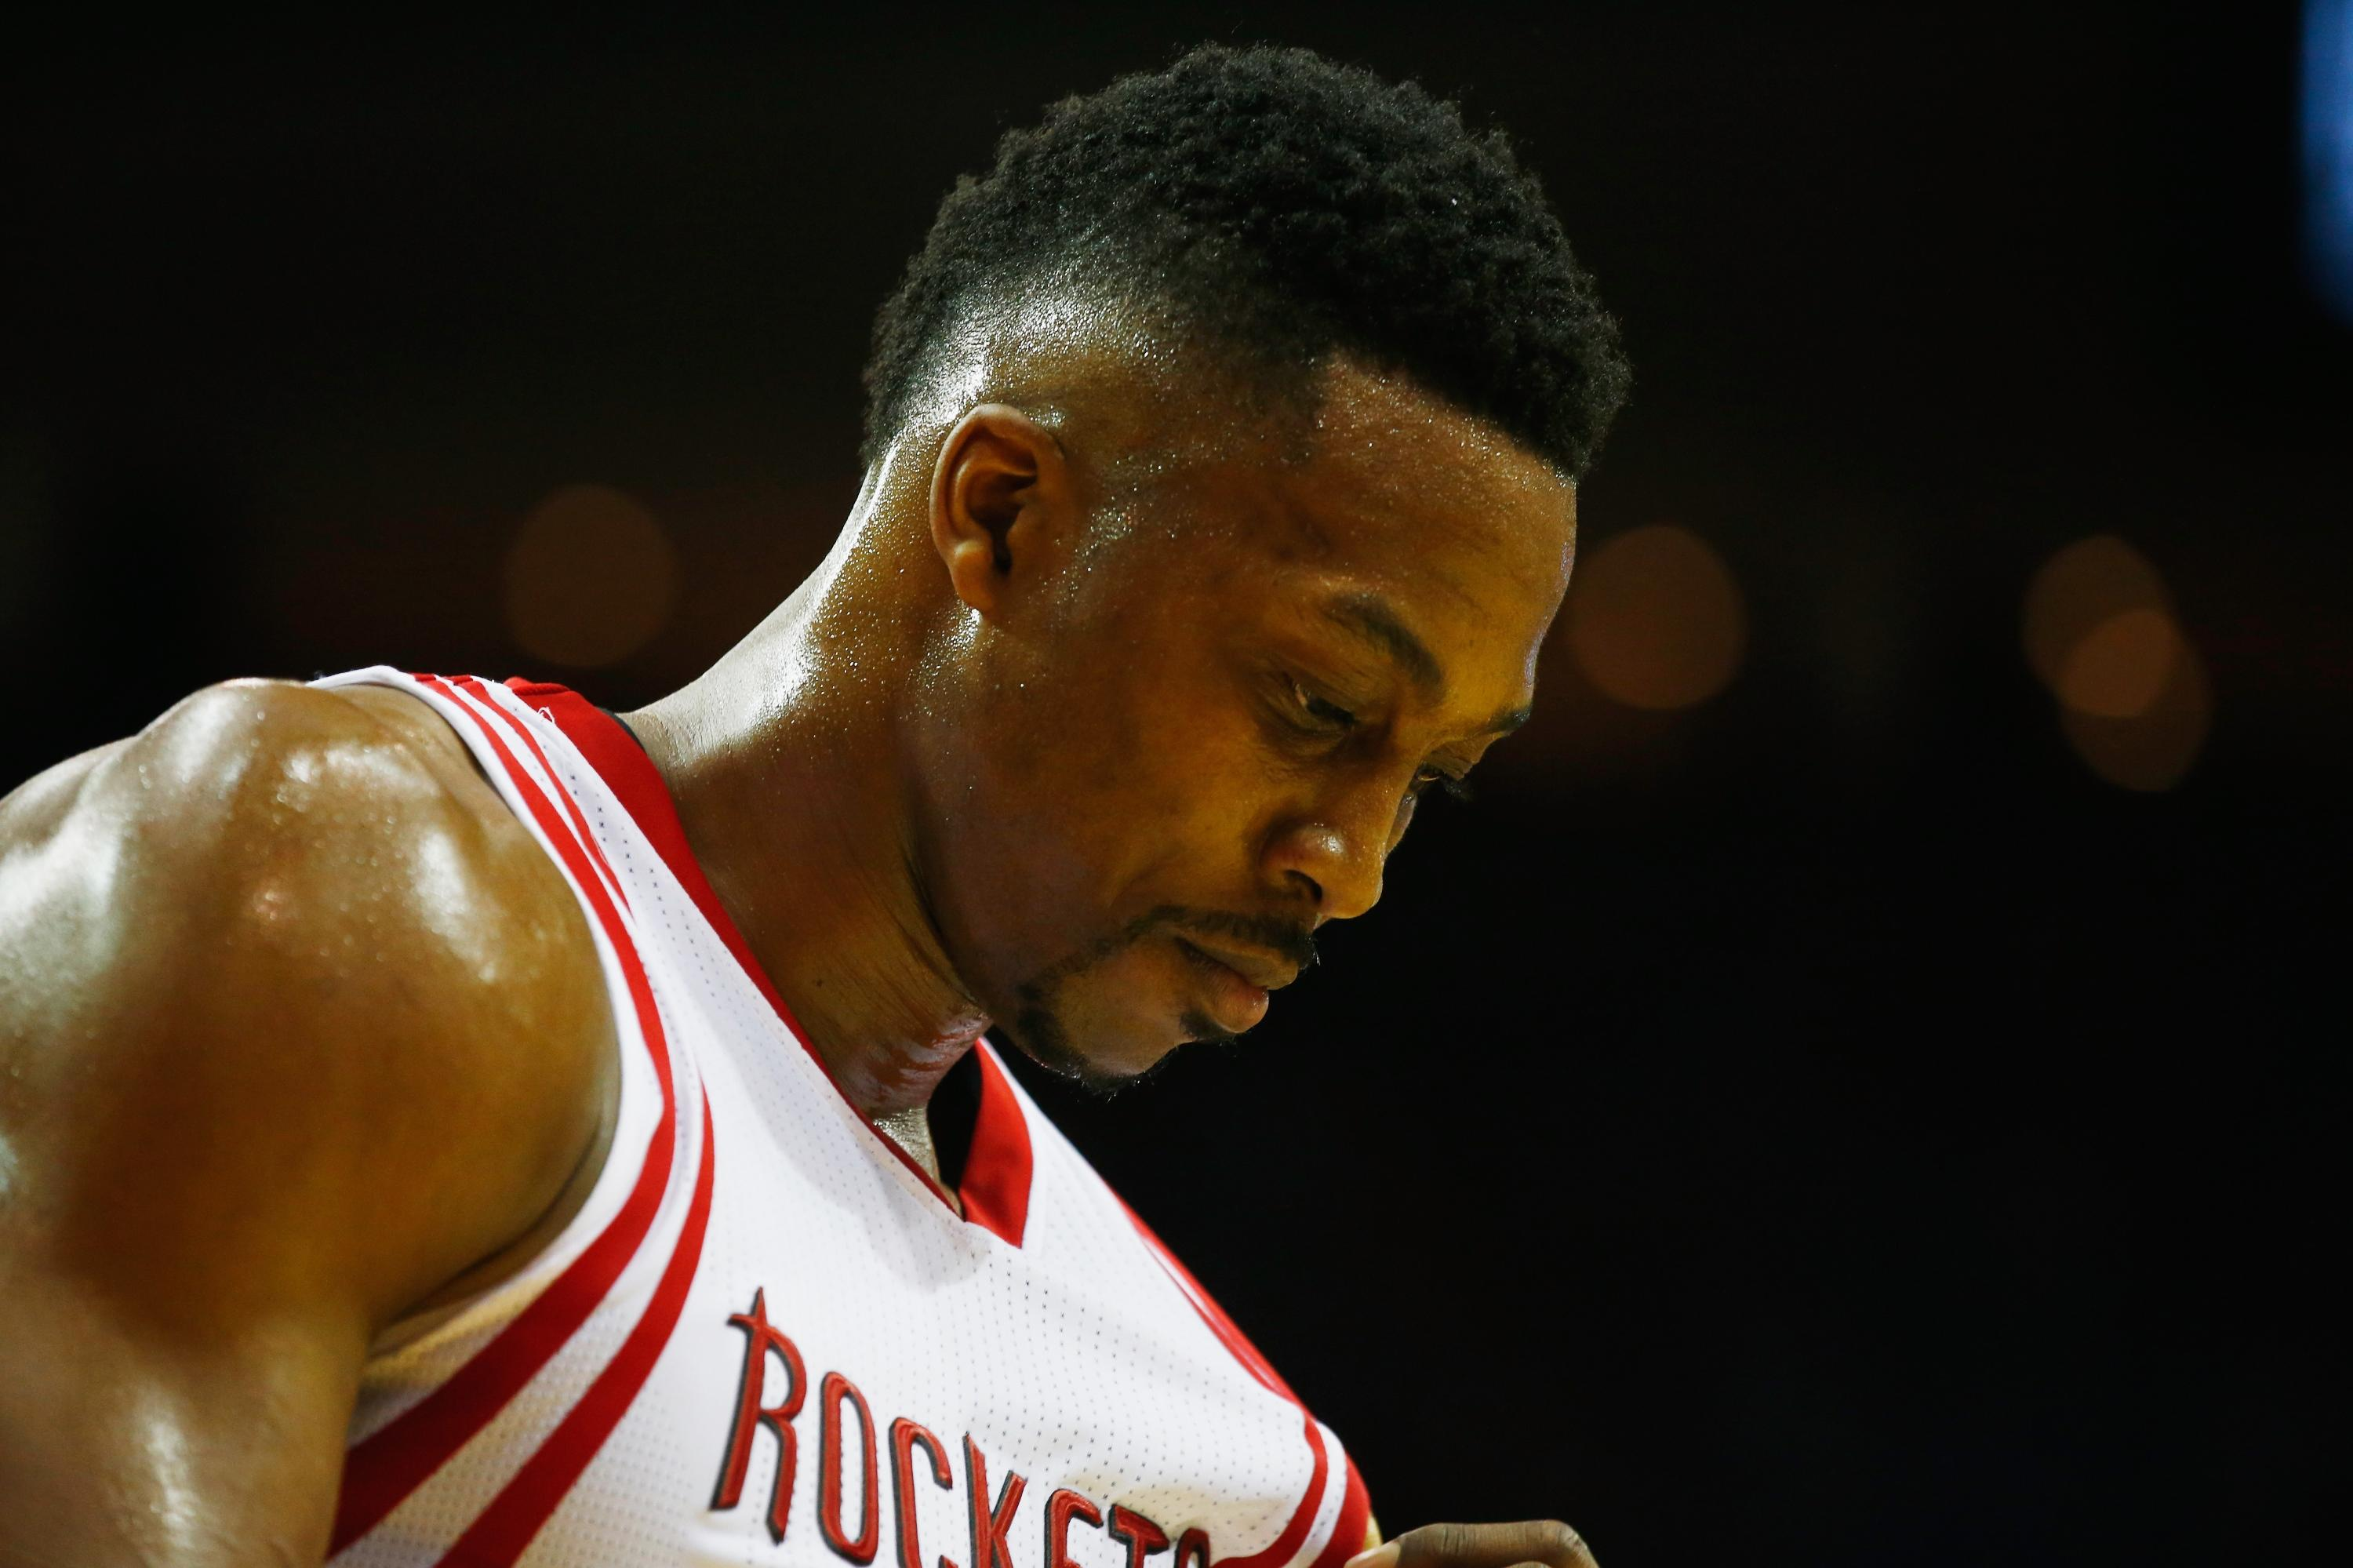 Dwight Howard at a crossroads yet again